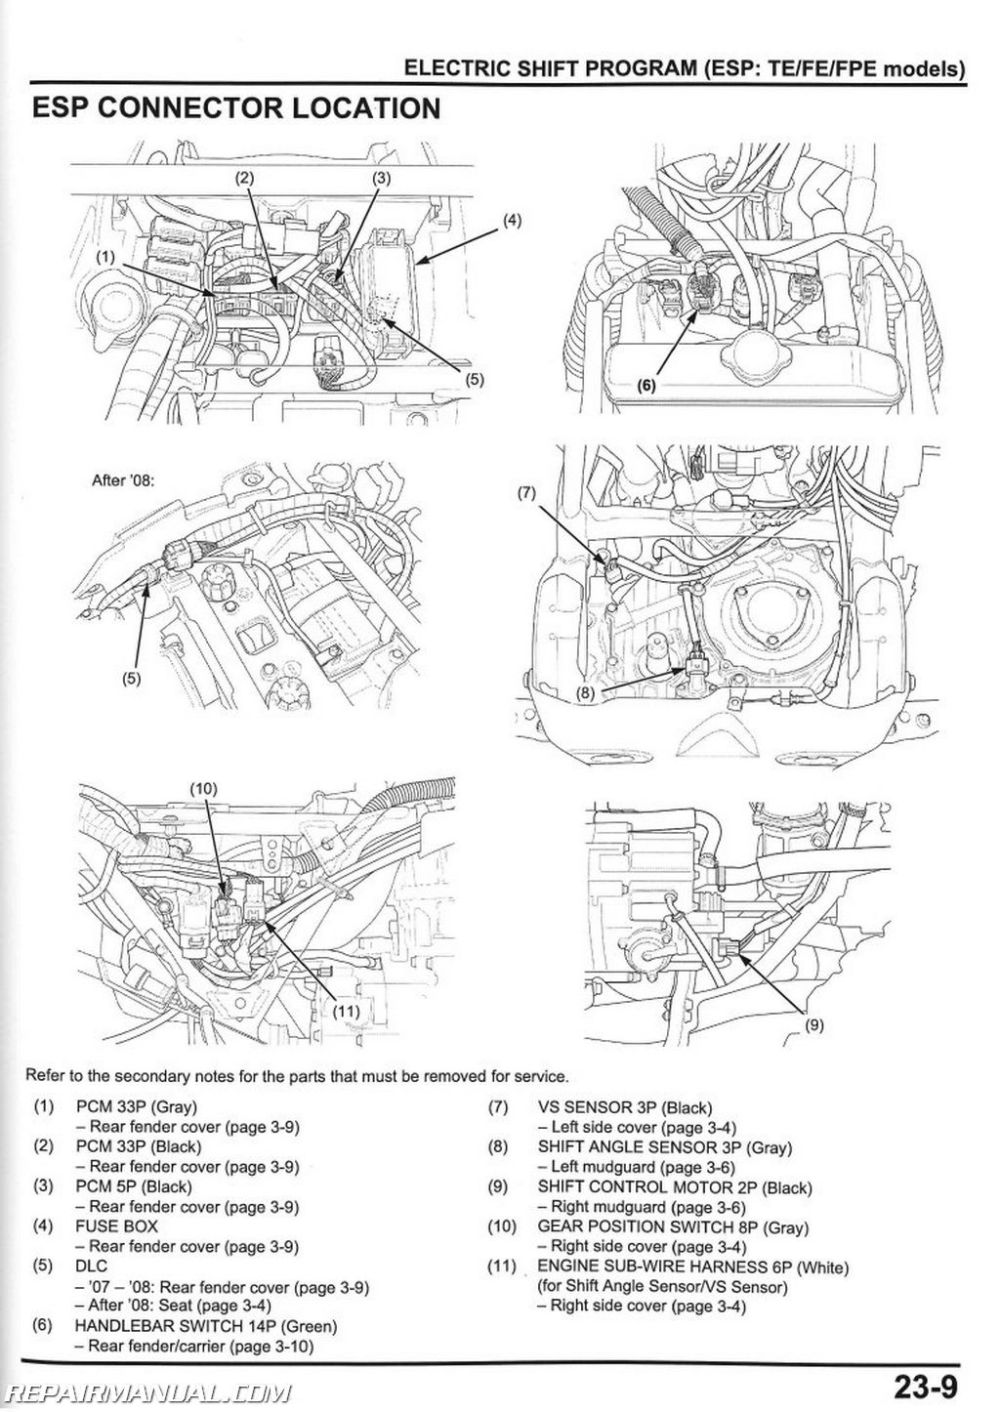 medium resolution of honda rancher esp wiring diagram simple wiring schema honda rancher parts diagram 2007 2013 honda trx420fe